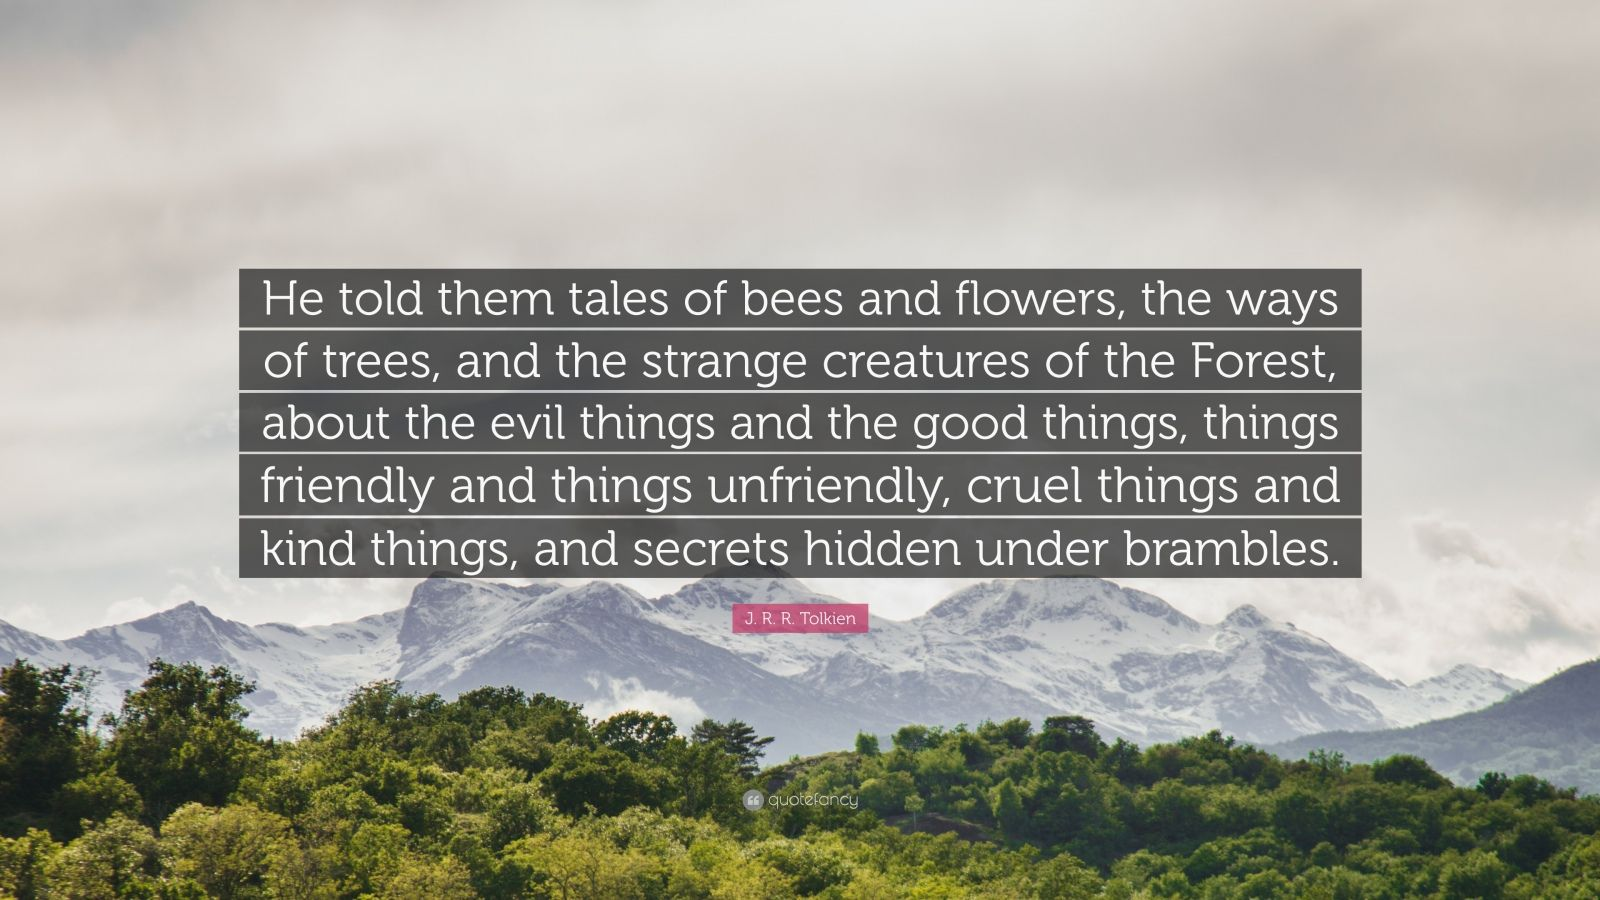 "J. R. R. Tolkien Quote: ""He told them tales of bees and flowers, the ways of trees, and the strange creatures of the Forest, about the evil things and the good things, things friendly and things unfriendly, cruel things and kind things, and secrets hidden under brambles."""